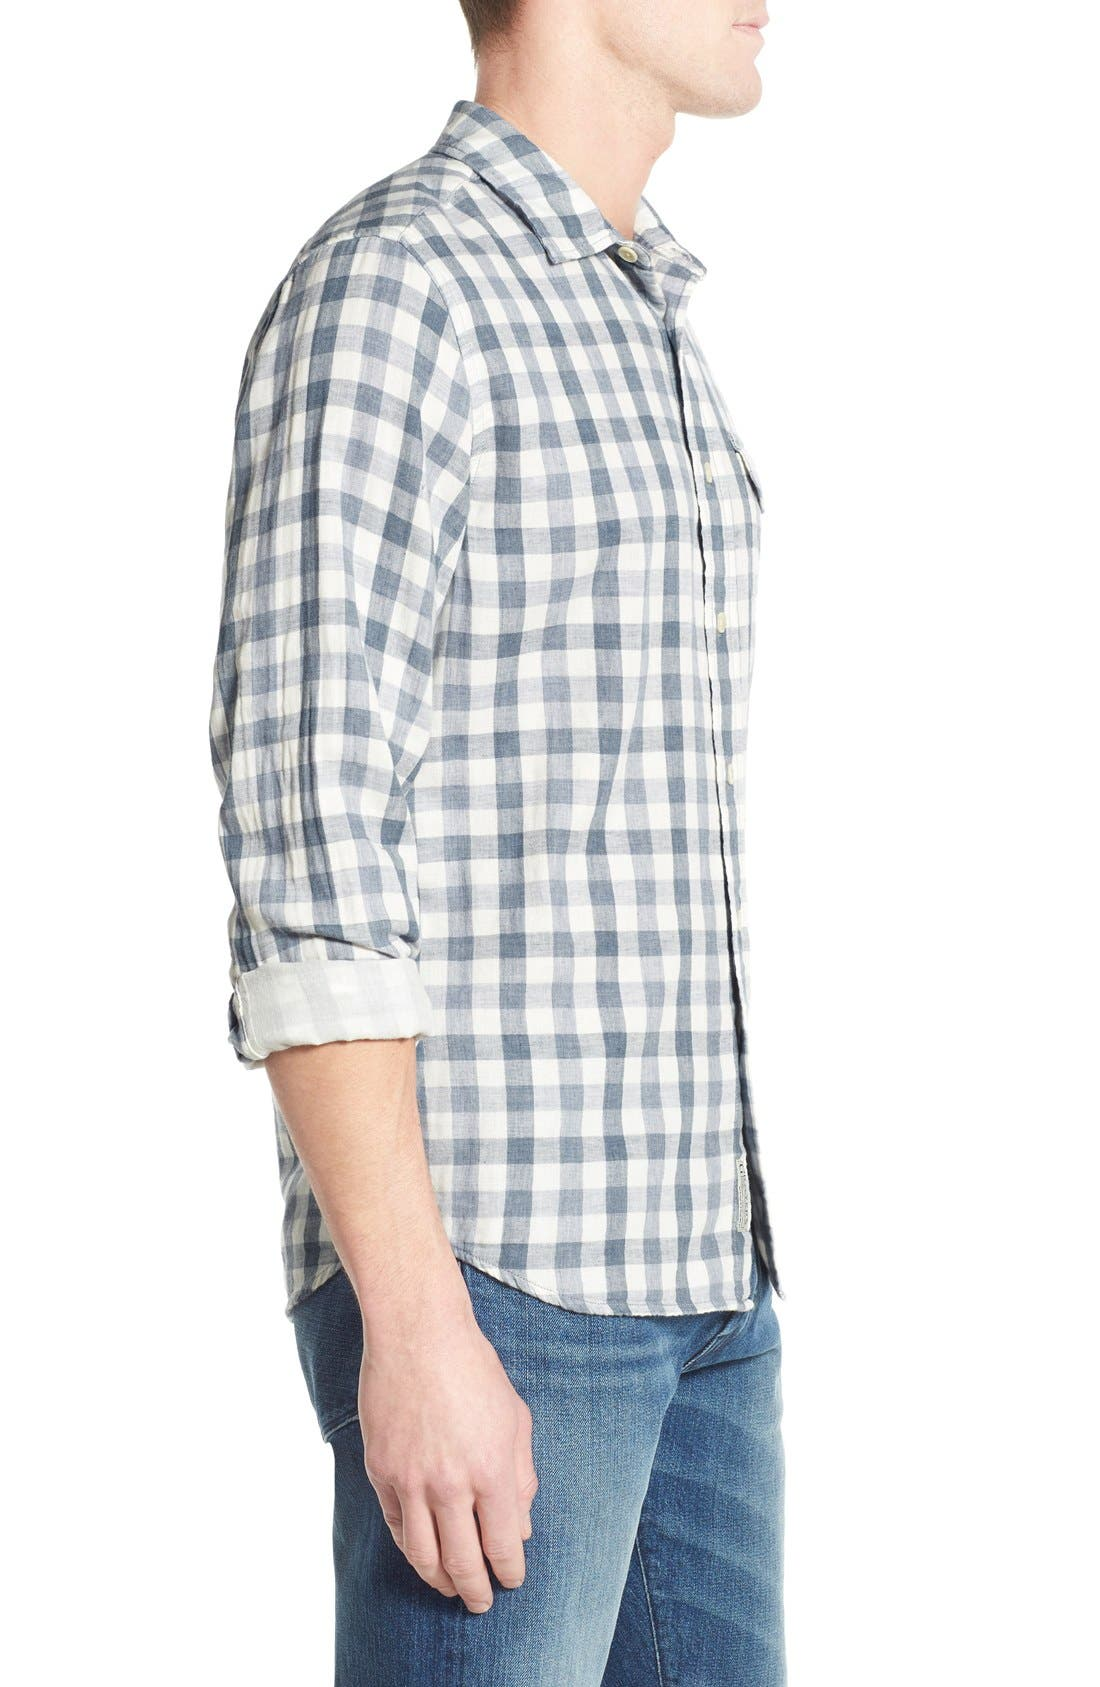 'Denby' Trim Fit Double Woven Sport Shirt,                             Alternate thumbnail 3, color,                             Heather Blue/ Cream Gingham